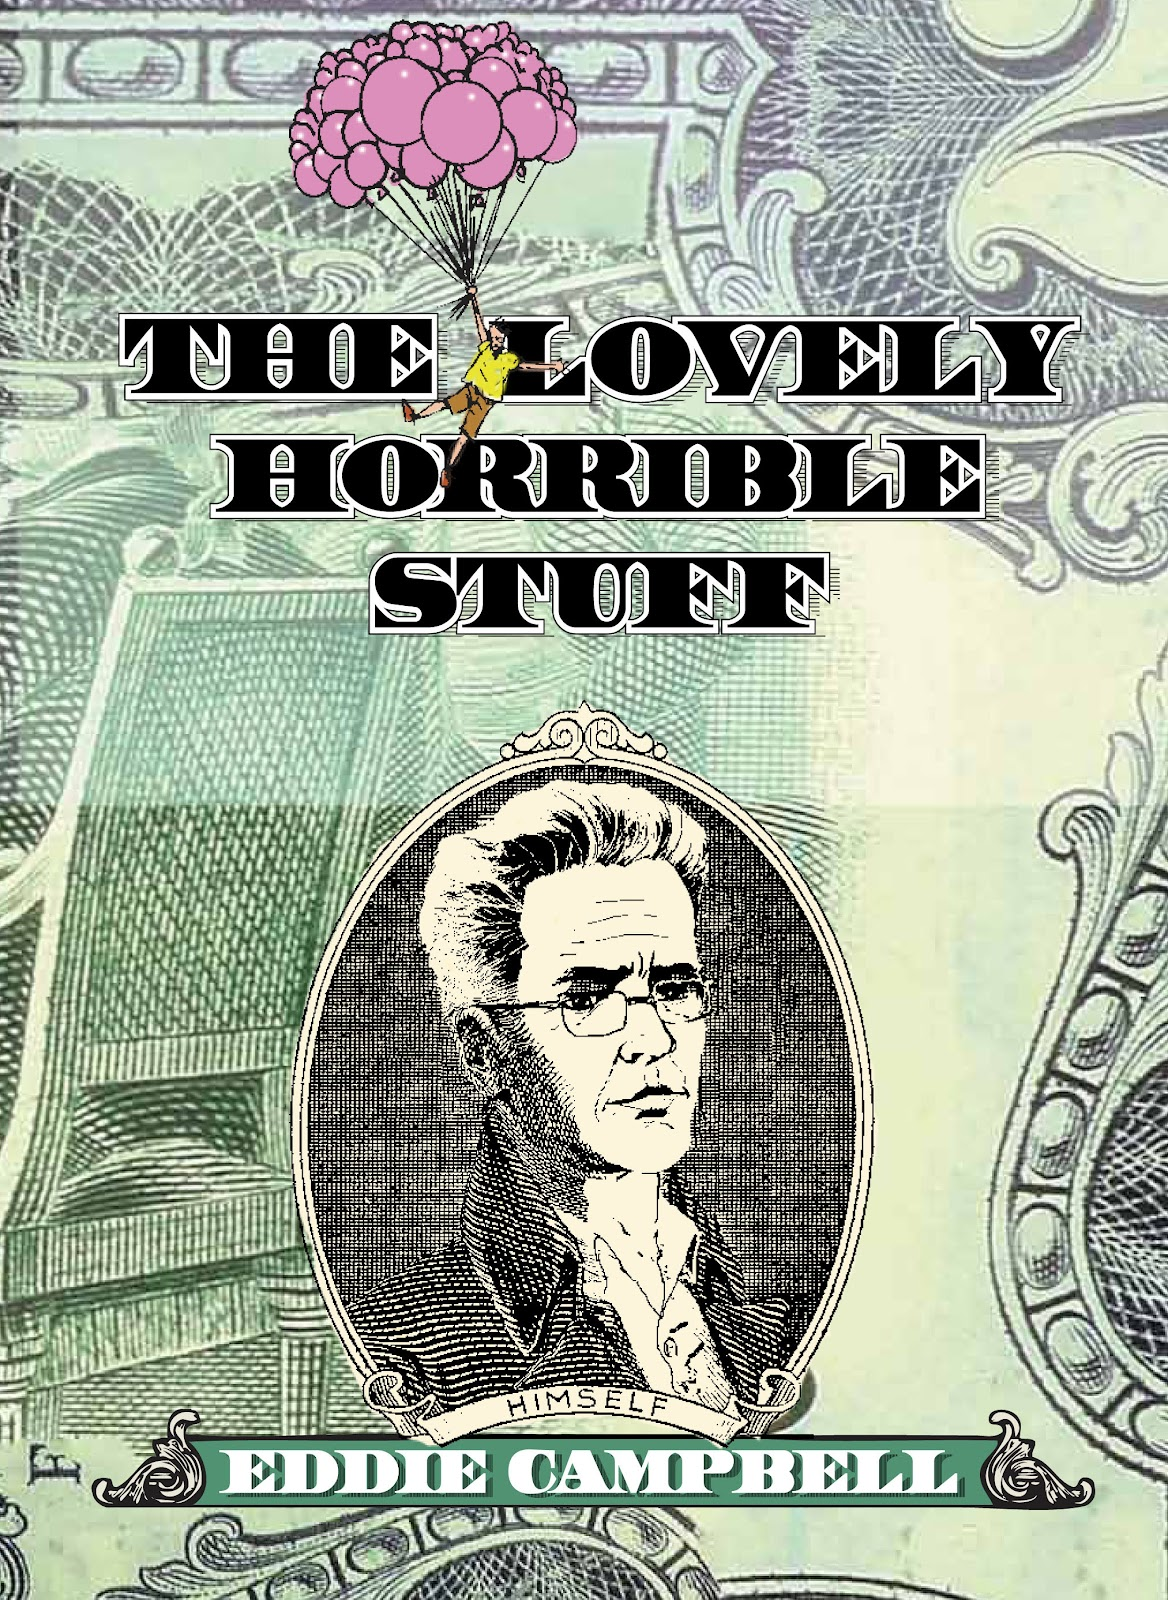 Read online The Lovely Horrible Stuff comic -  Issue # TPB - 1